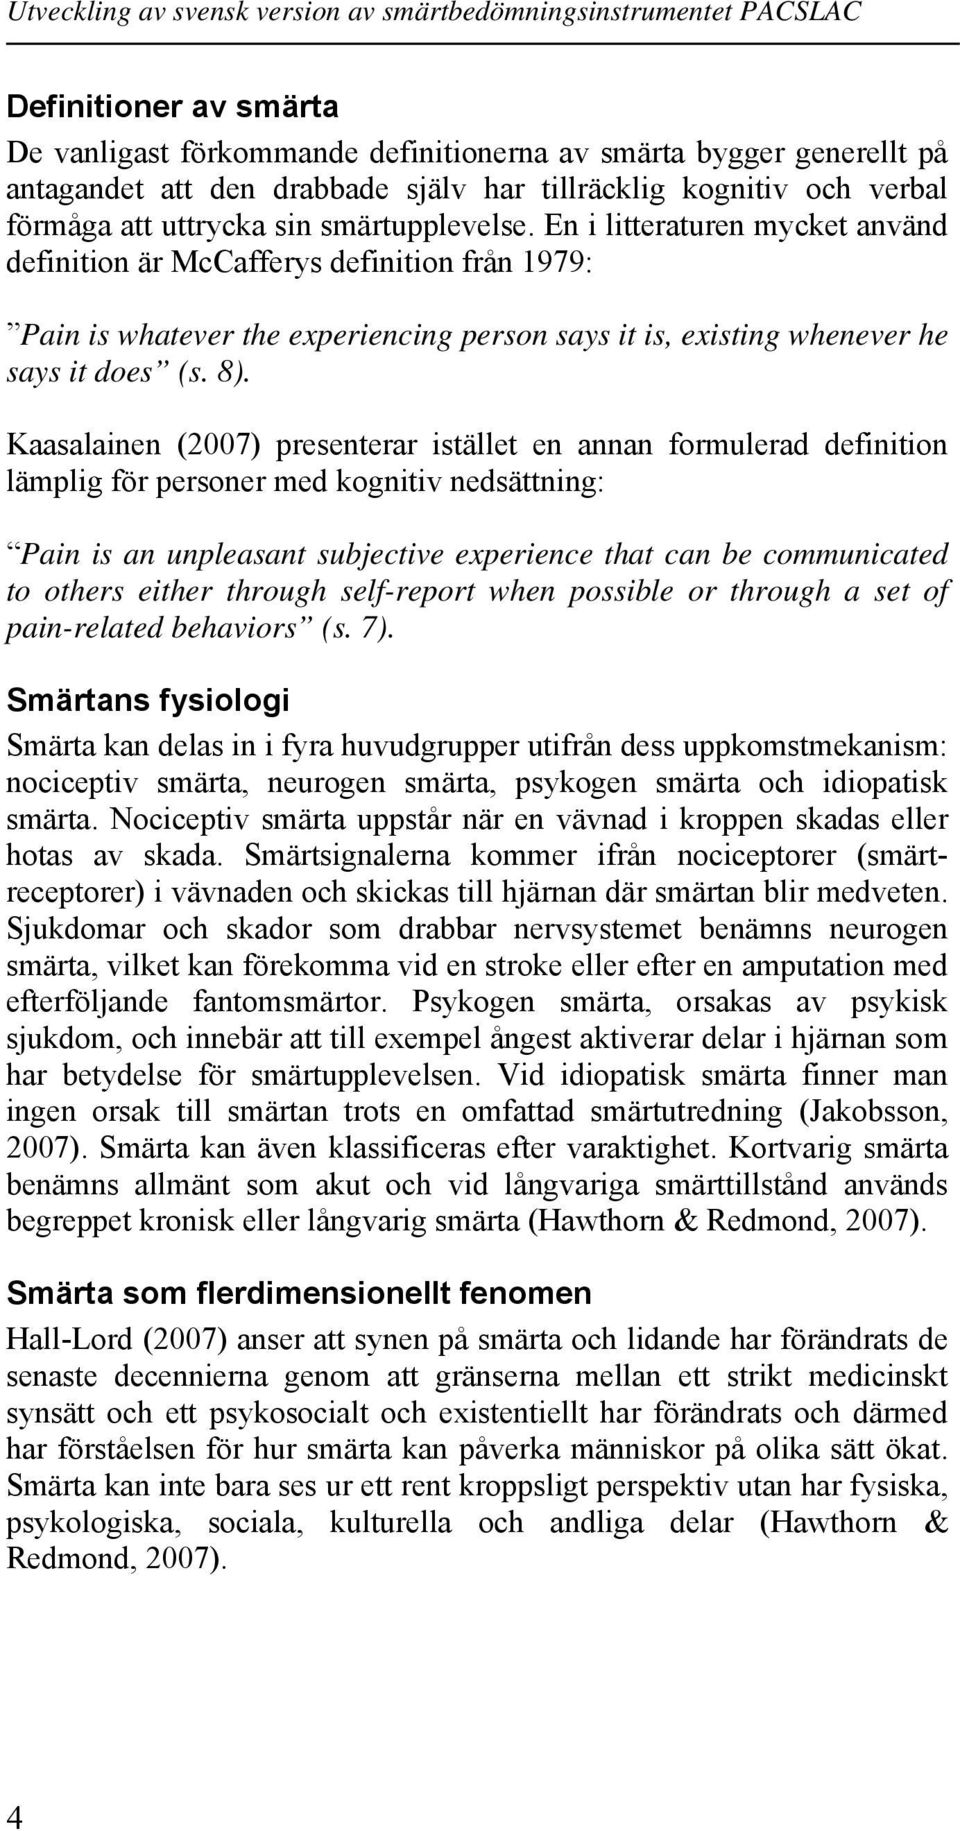 Kaasalainen (2007) presenterar istället en annan formulerad definition lämplig för personer med kognitiv nedsättning: Pain is an unpleasant subjective experience that can be communicated to others